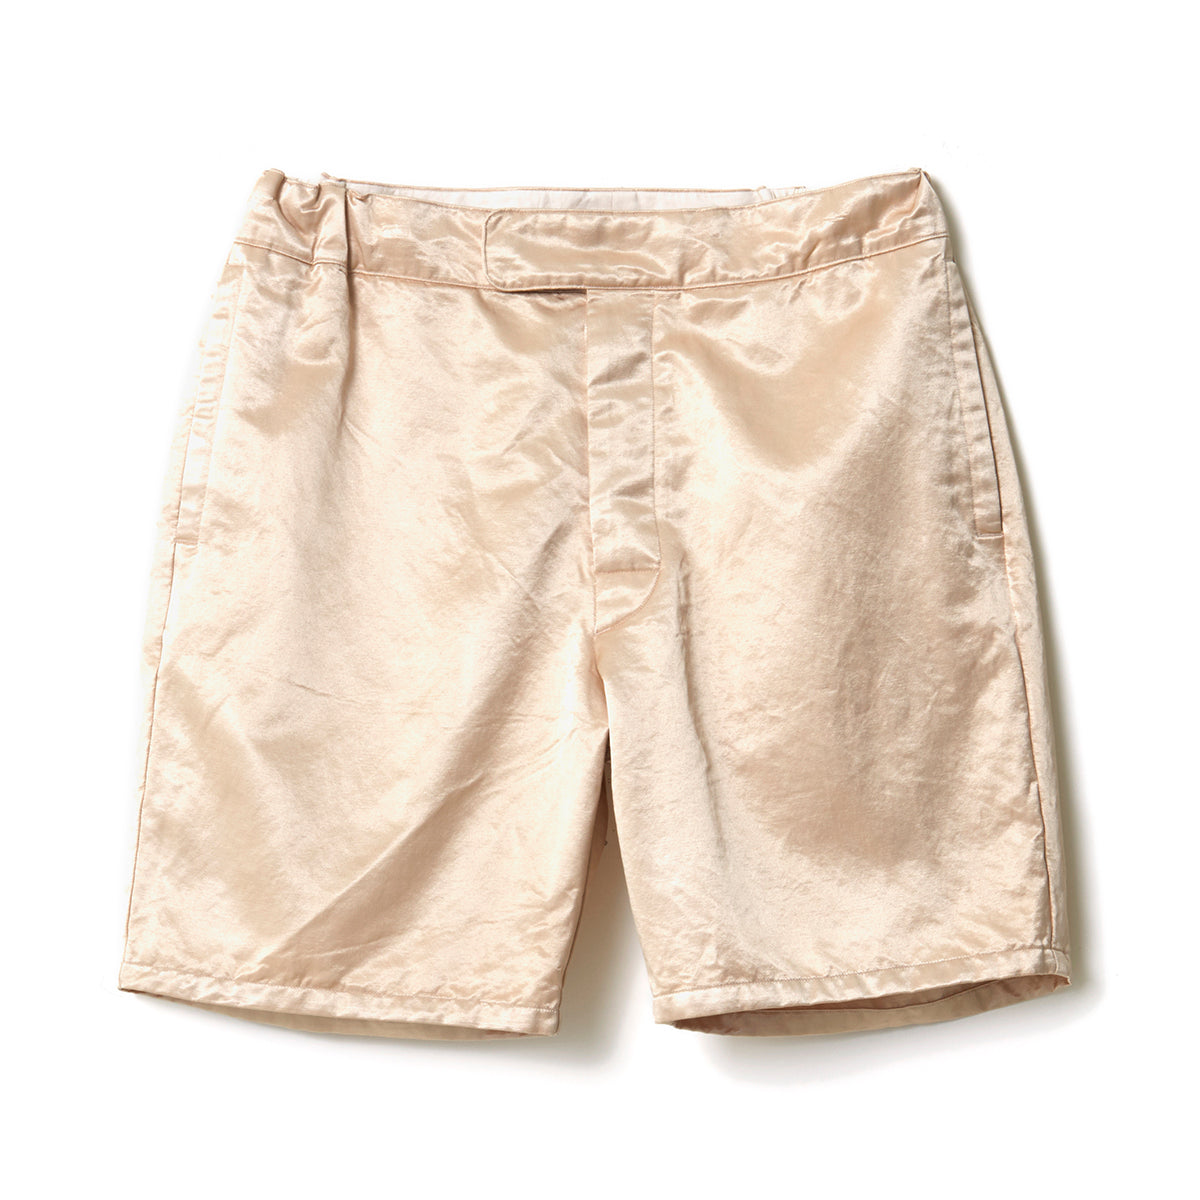 Satin Shorts / BEIGE